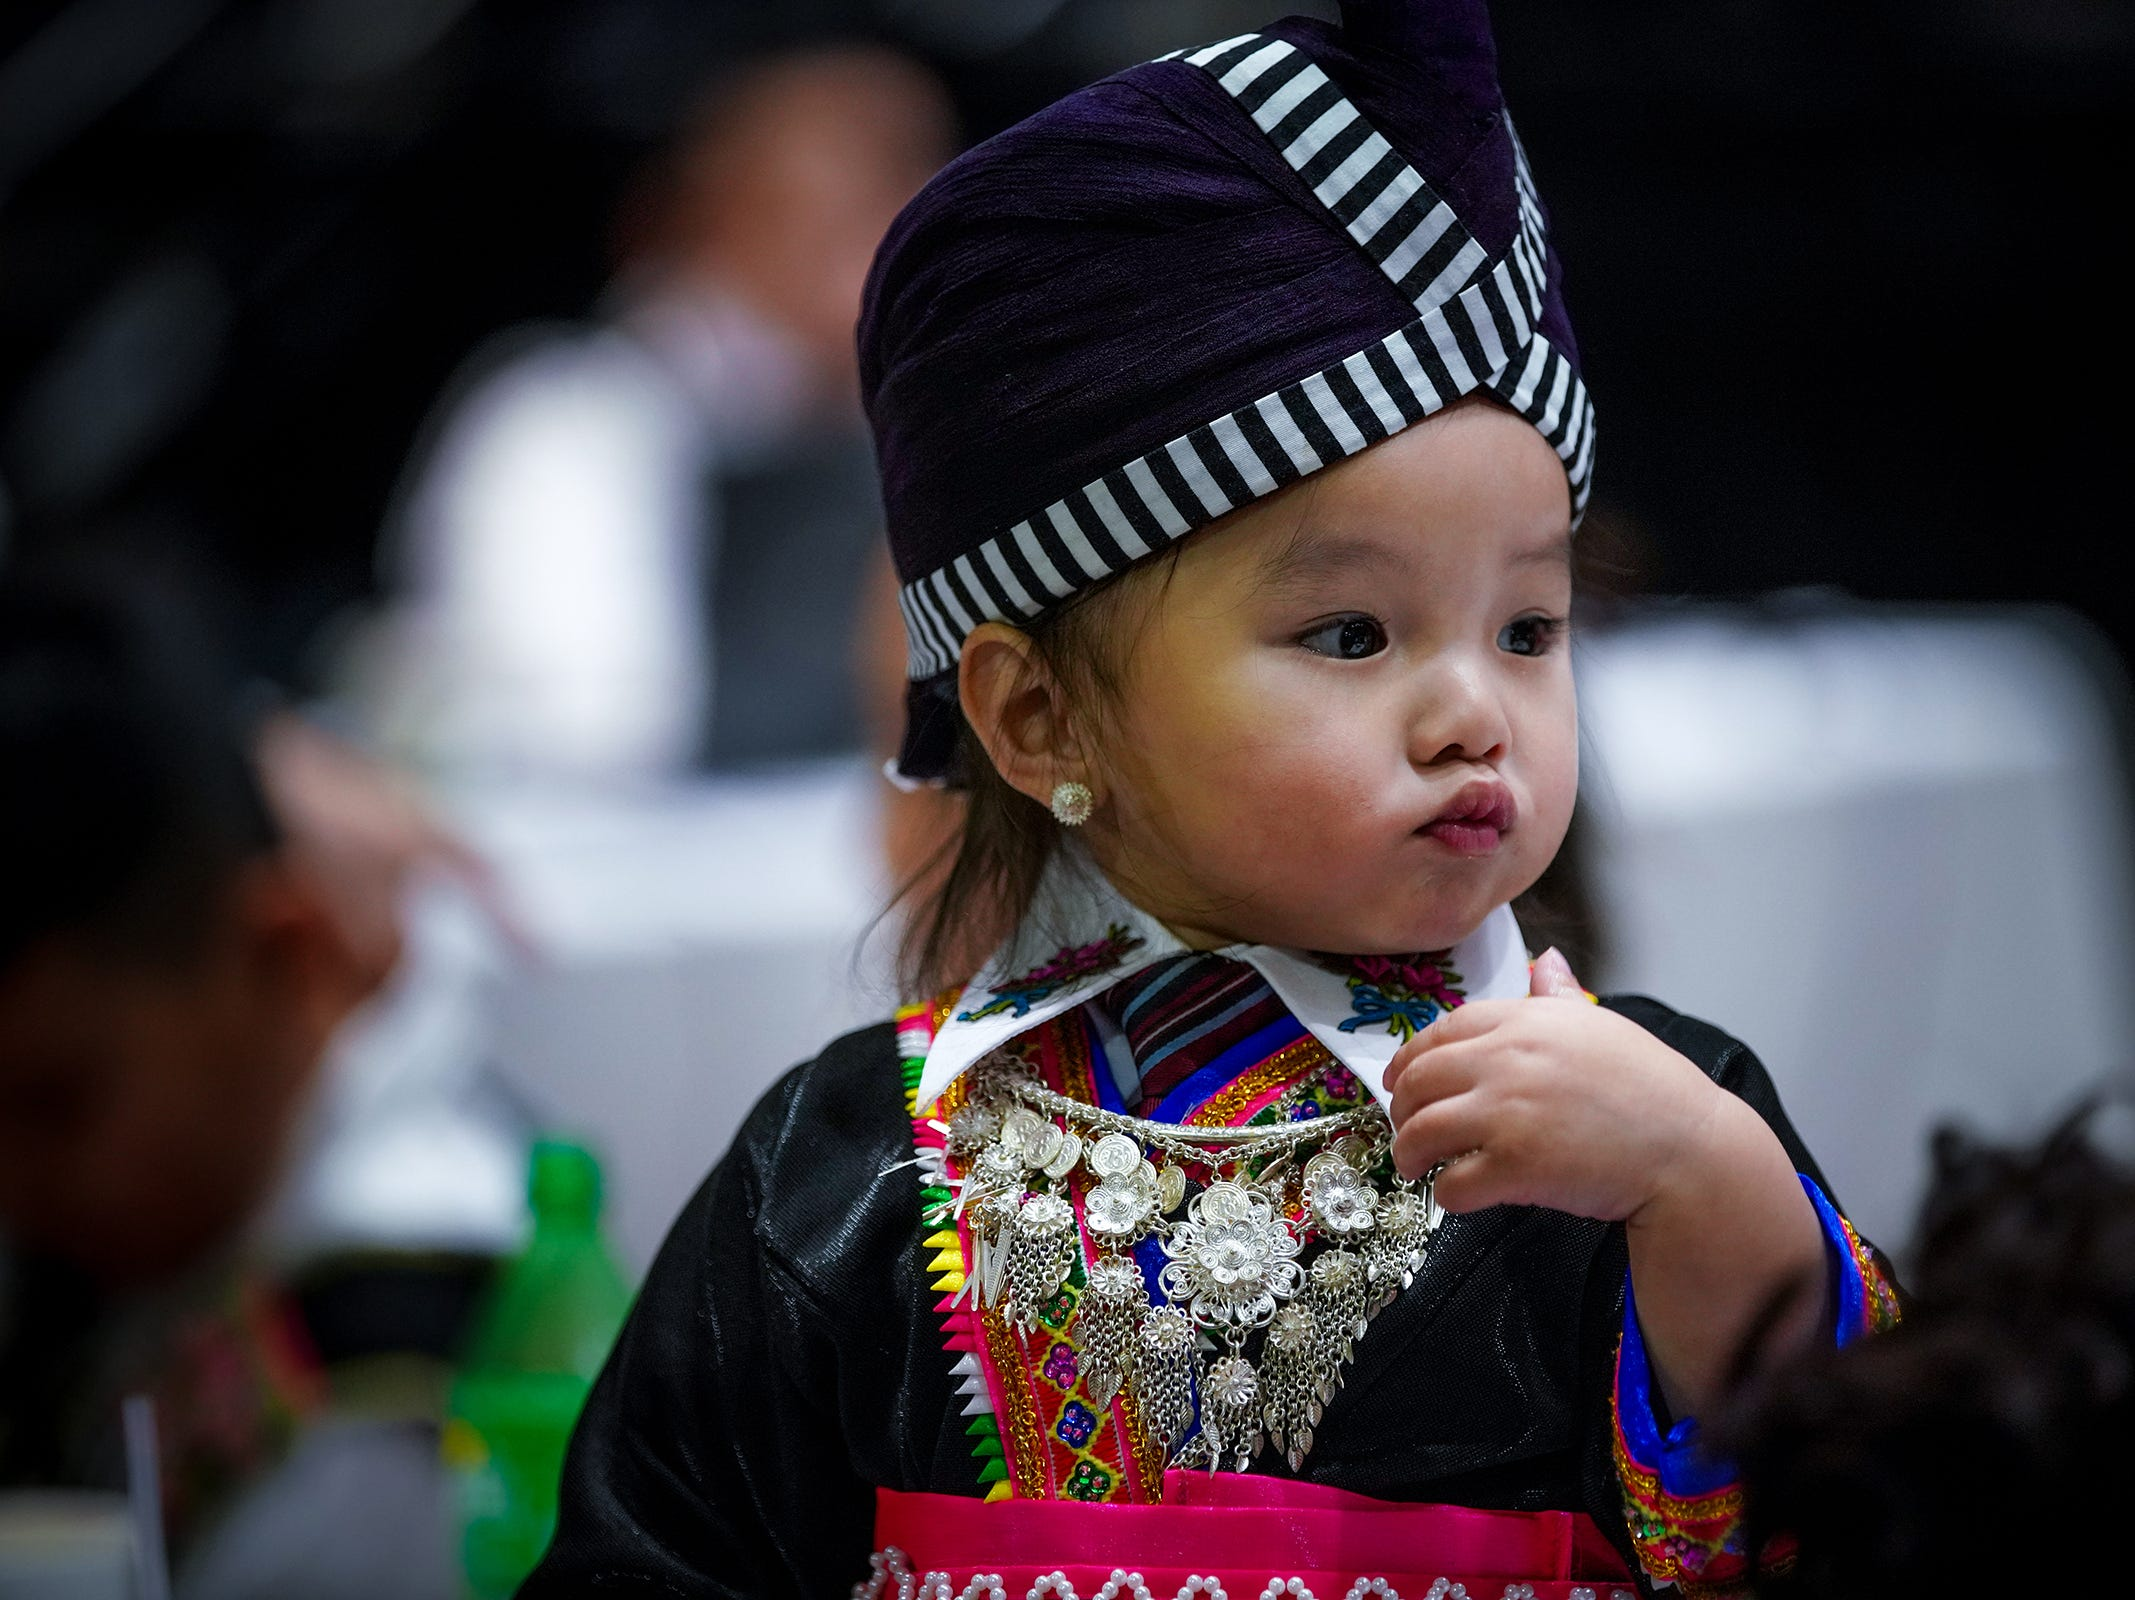 Thousands of Hmong across Wisconsin traveled over the weekend to celebrate one of the largest Hmong festivals in the country, the 40th annual Minnesota Hmong New Year event at the RiverCentre in St. Paul, Minnesota. This is a three-day celebration ran Friday through Sunday, with various activities including traditional ball tossings, folk song singing, cultural dance and a pageant competition. Many Hmong dressed up in their favorite colorful costumes and wore special hand-made jewelries to celebrate many achievements throughout the year to coincide with the holiday of Thanksgiving. T'xer Zhon Kha/USA TODAY NETWORK-Wisconsin